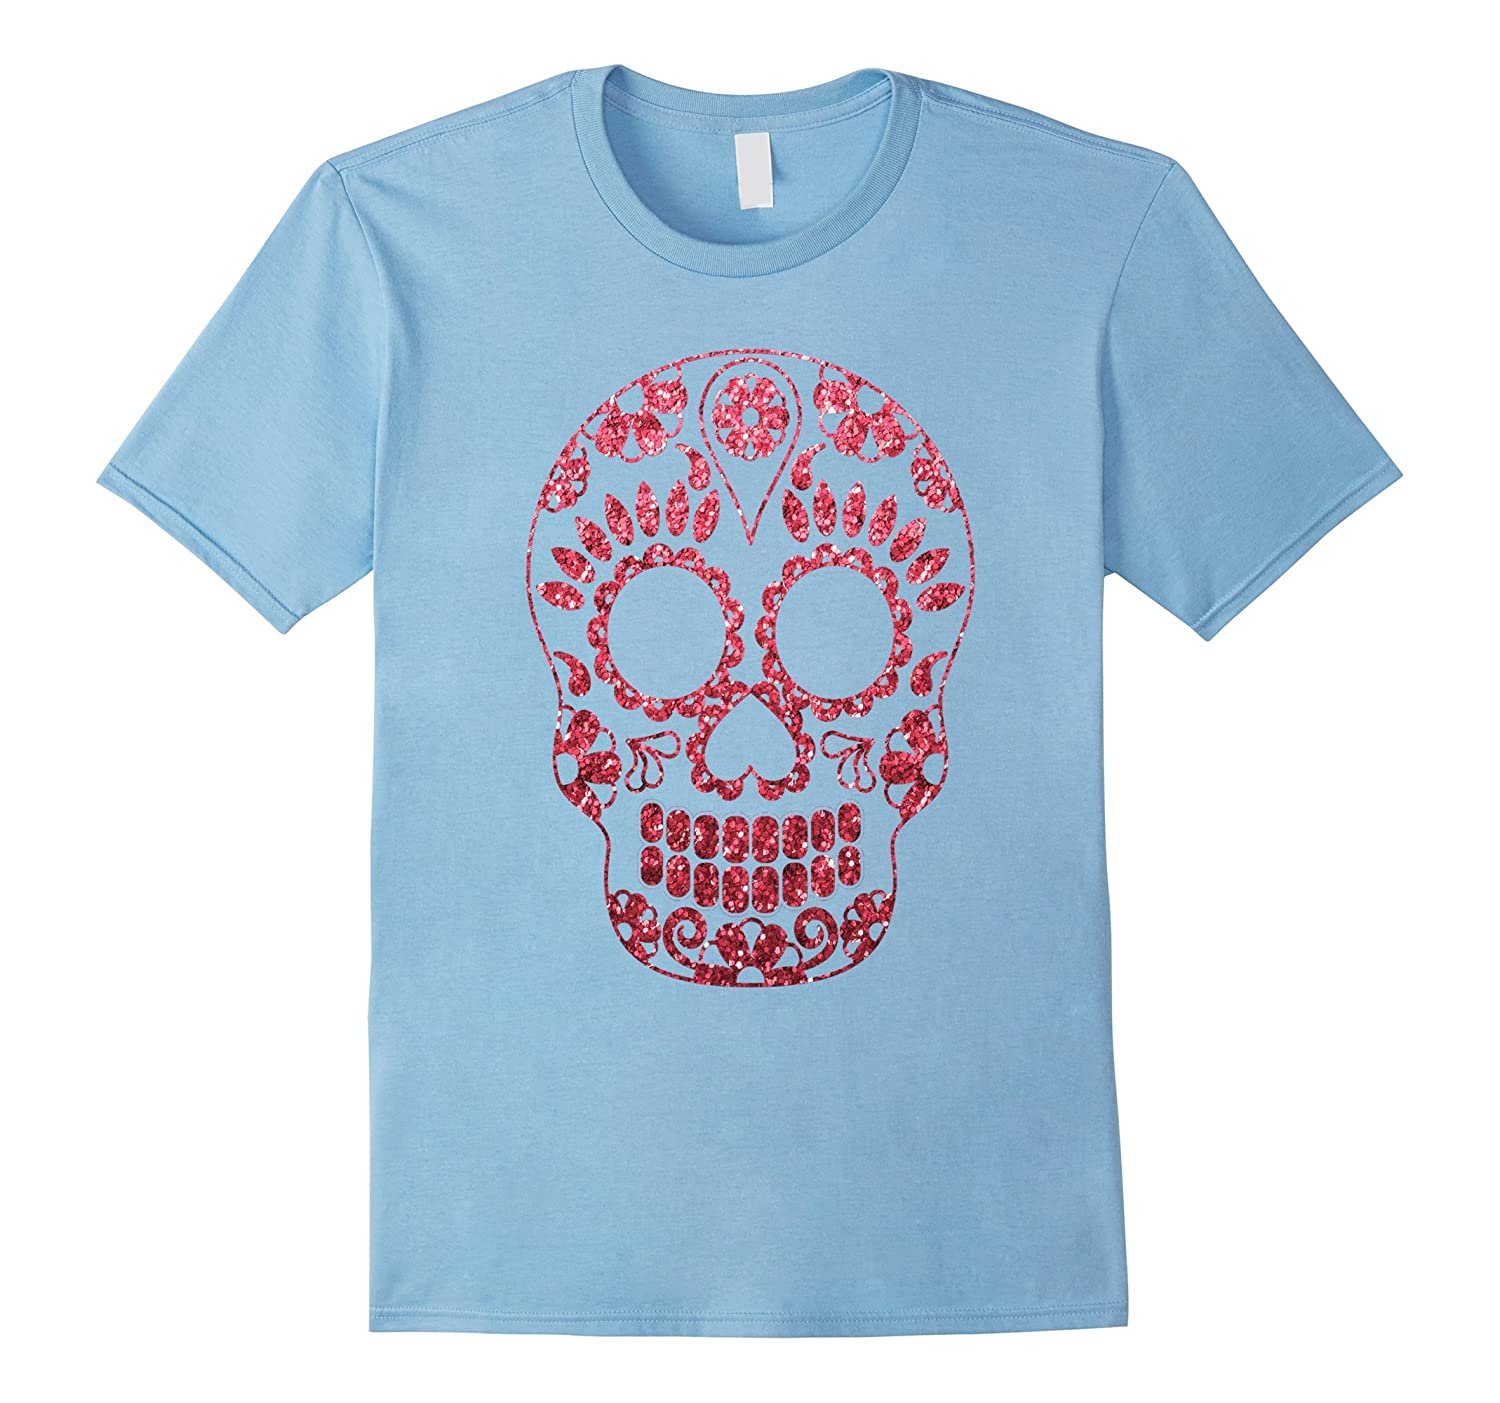 Pink glitter effect Sugar Skull Tshirt For Halloween Party-SFS